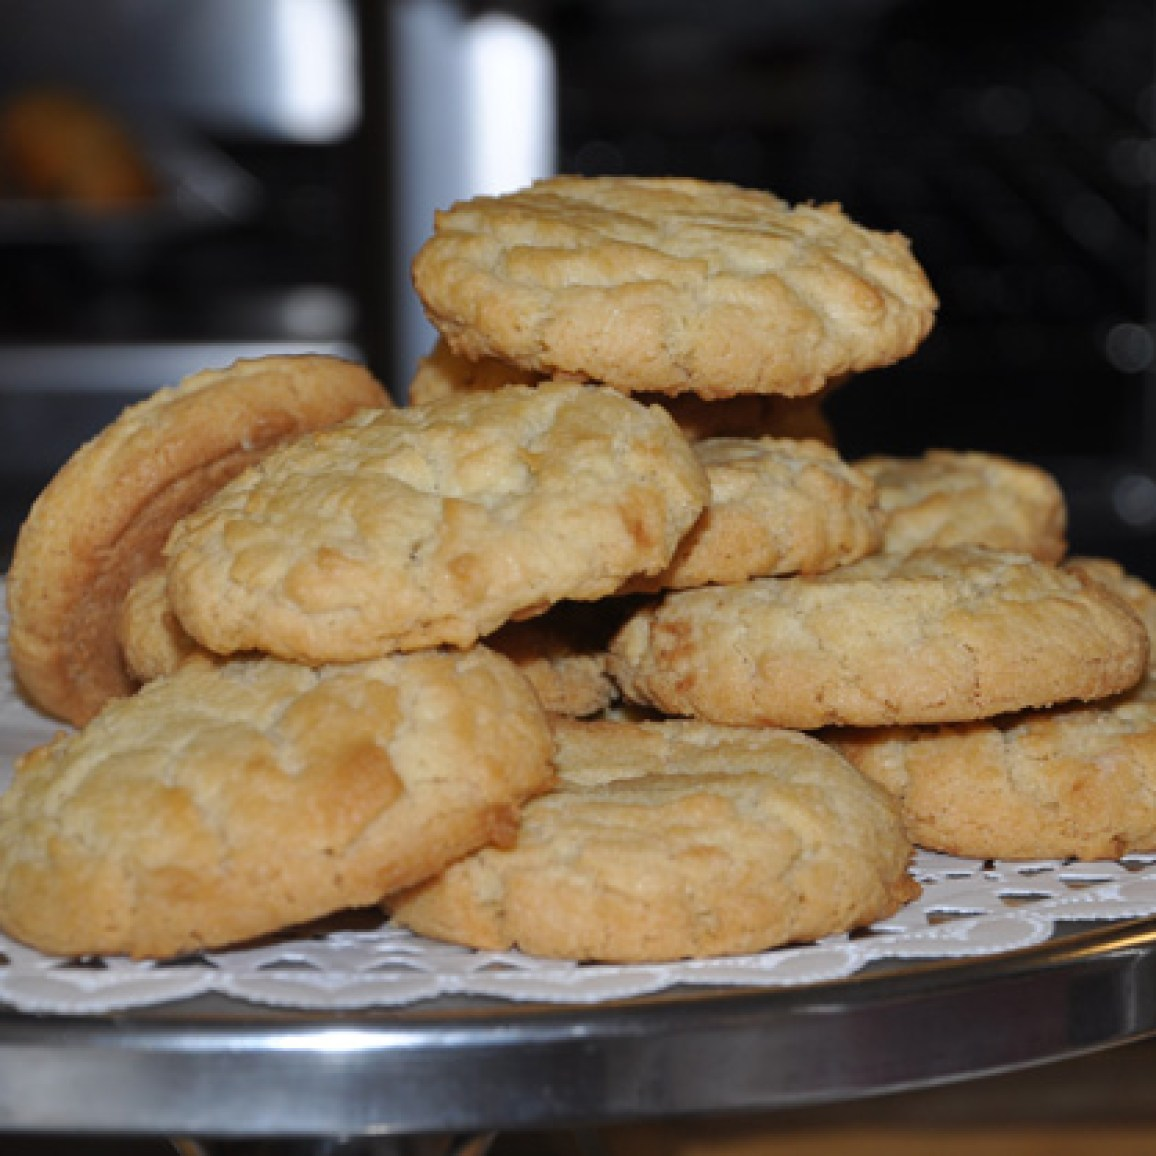 Paula Voska's Sugar Crackle cookies, fresh from the oven - Photographed by Liz Luby